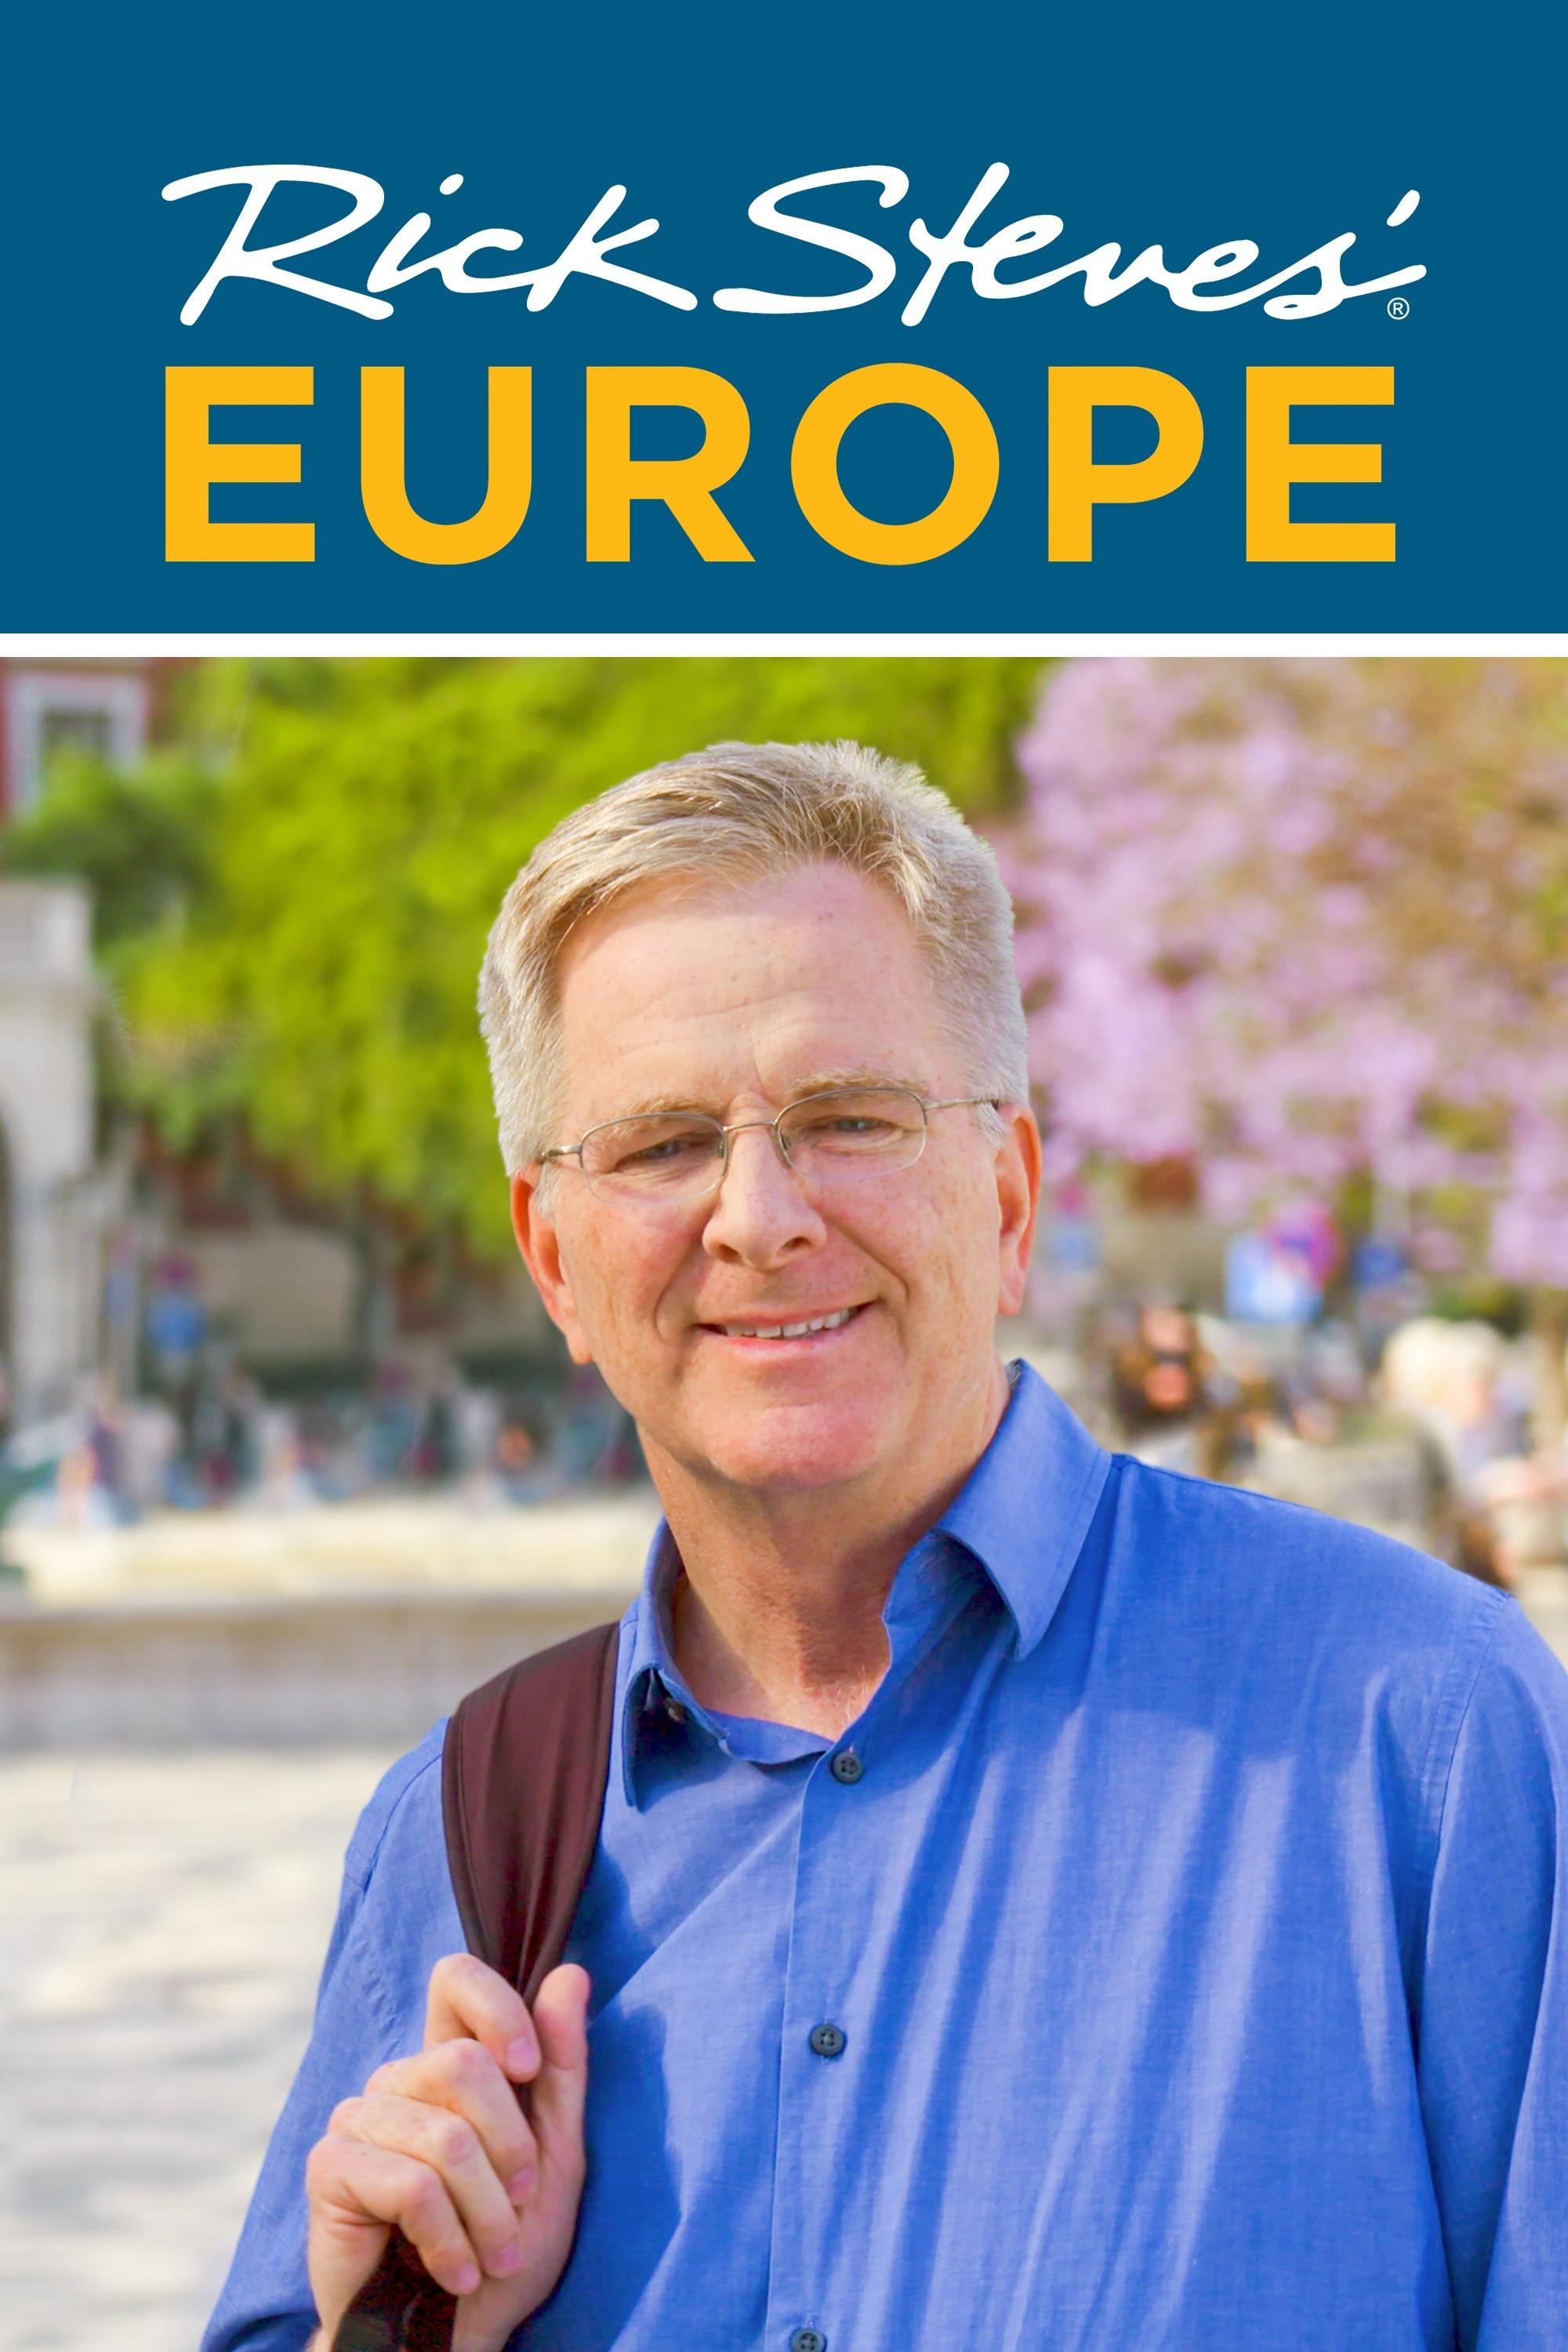 Rick Steves' Europe on FREECABLE TV